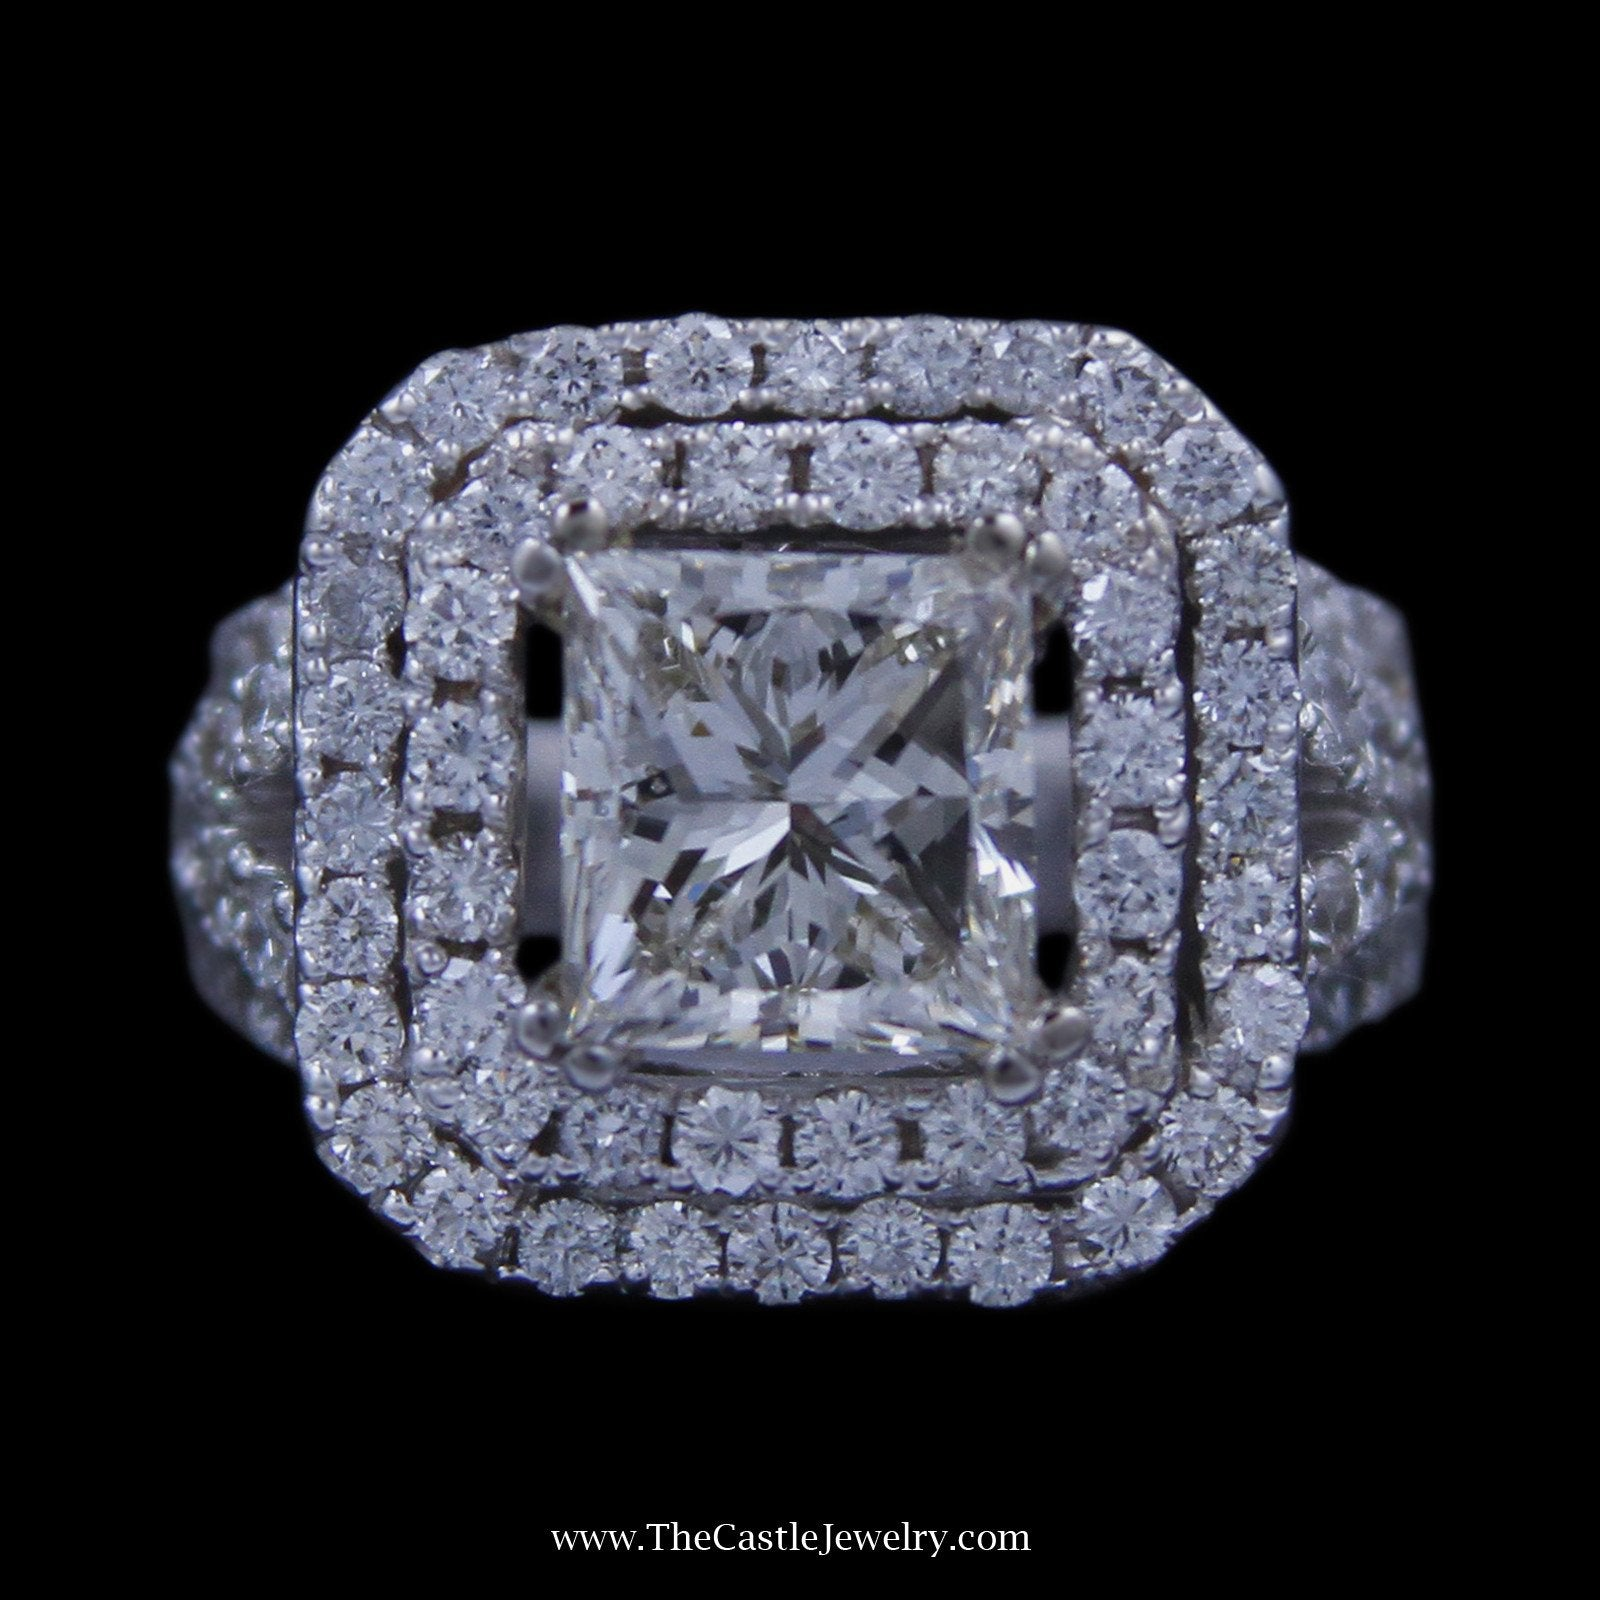 Princess Cut 2.98ct Diamond Engagement Ring w/ Double Round Diamond Bezel in 18k White Gold